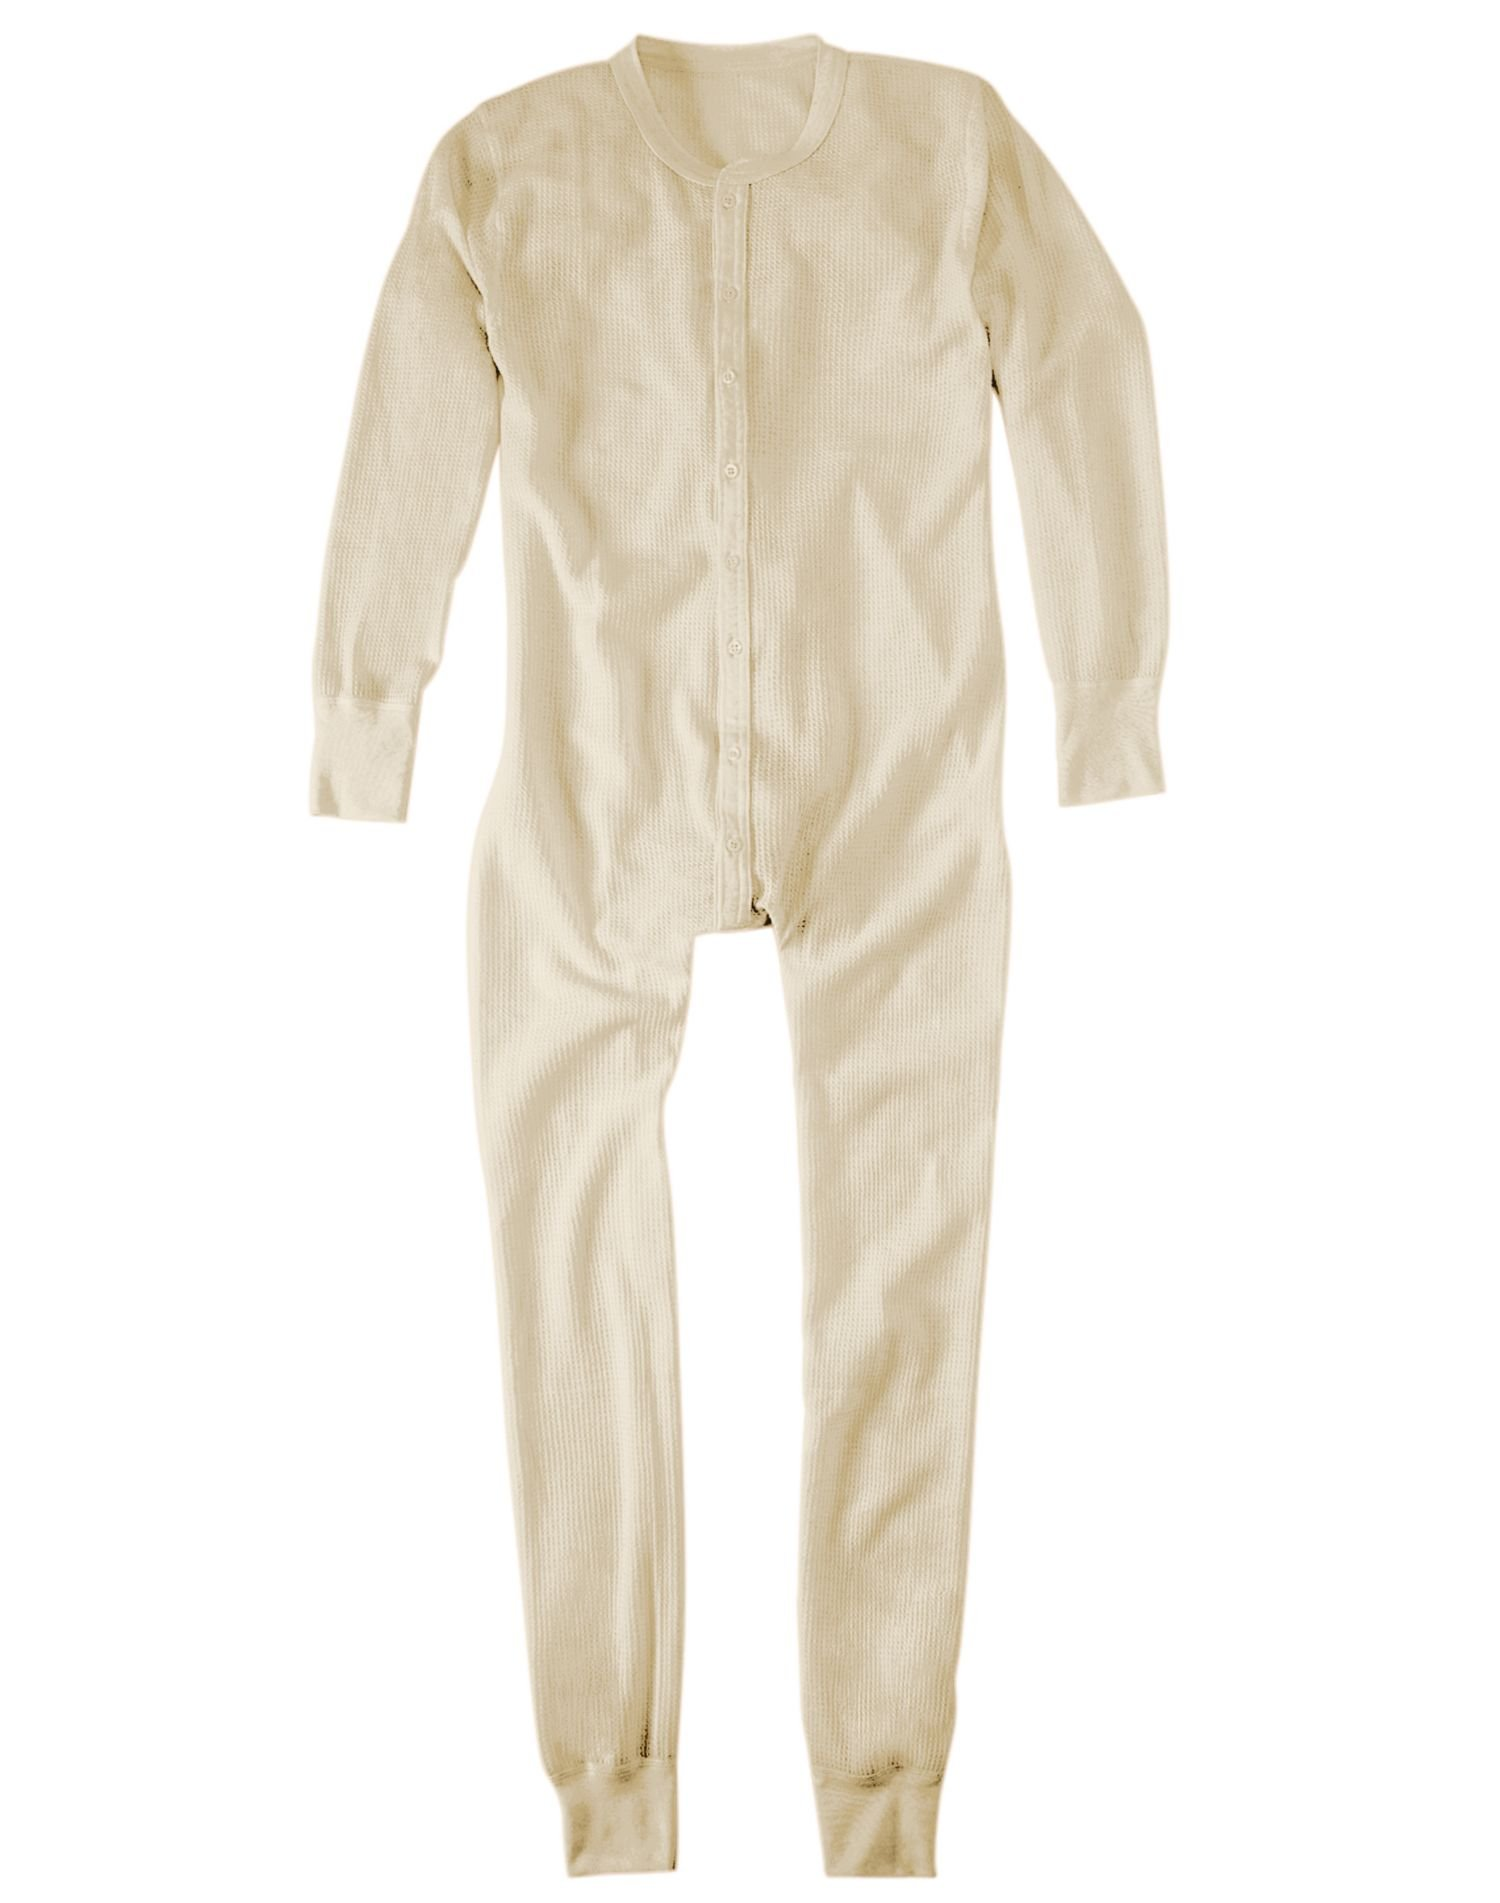 Hanes Men's Thermal Union Suit # 22806, XL, Natural by Hanes